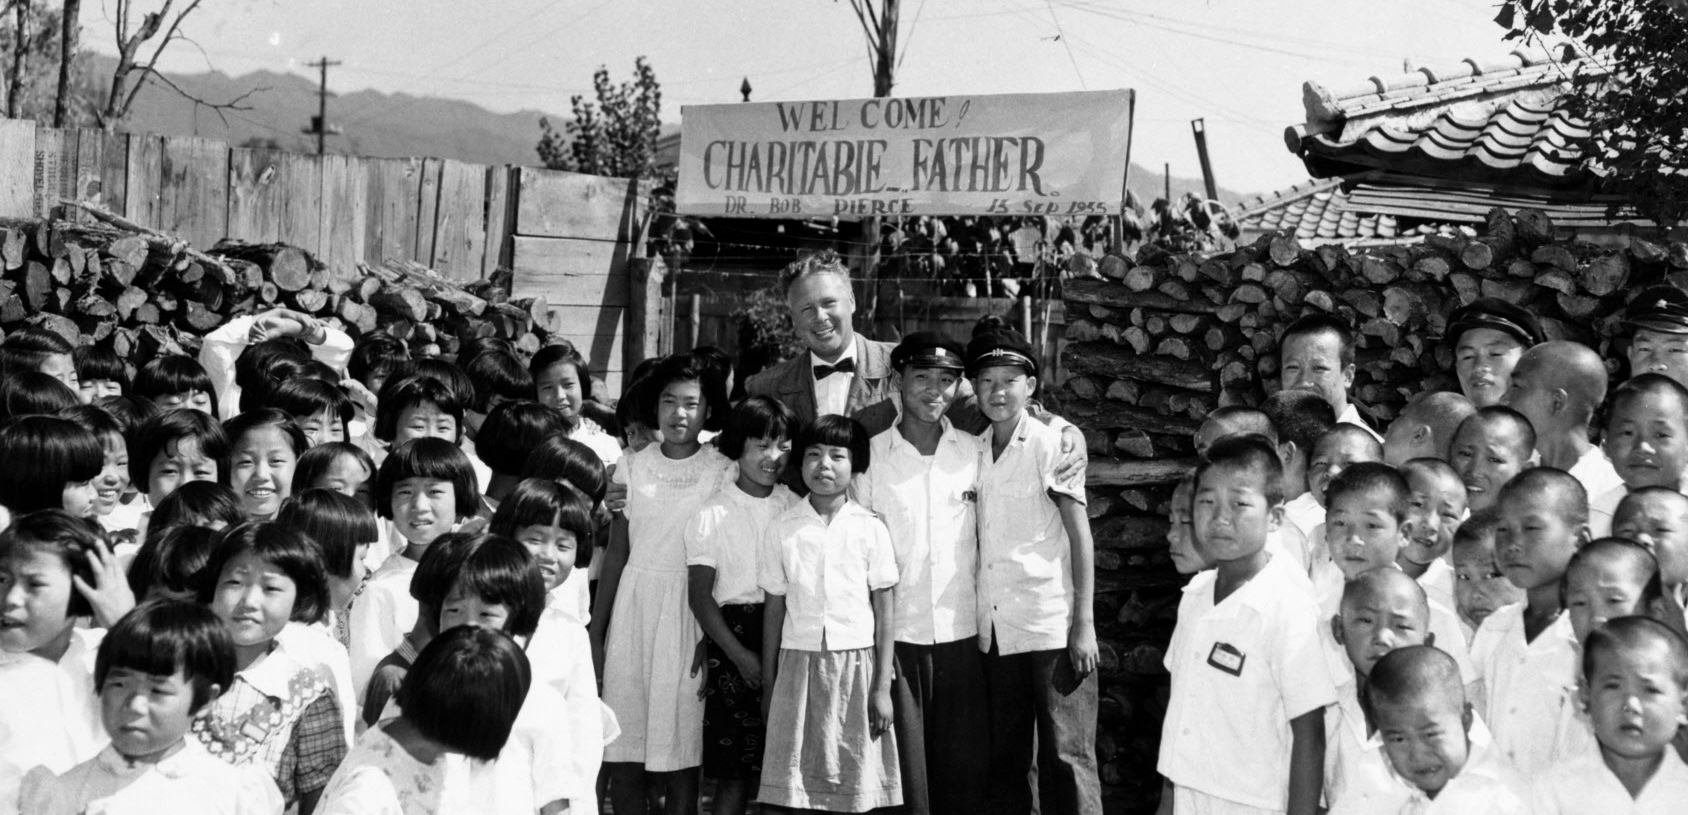 World Vision supports an orphanage built by General Paik in South Korea in 1955. World Vision founder, Bob Pierce, talks about New Year's resolutions on a December 1959 radio broadcast.